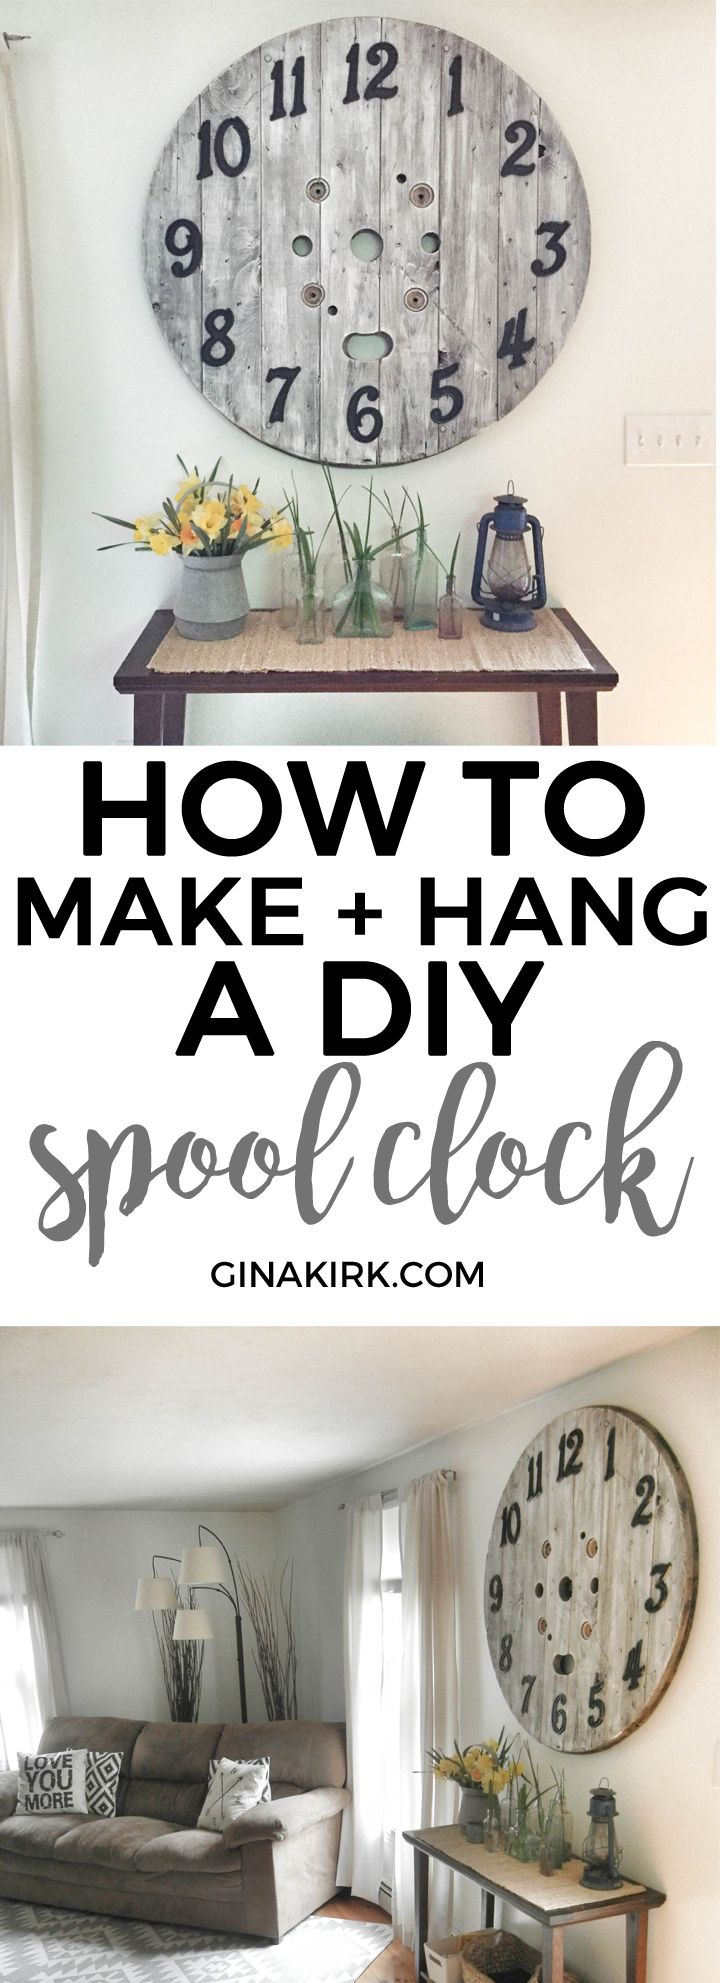 Weekend project: How to make a DIY spool clock | DIY rustic spool clock tutorial | Oversized home decor idea!